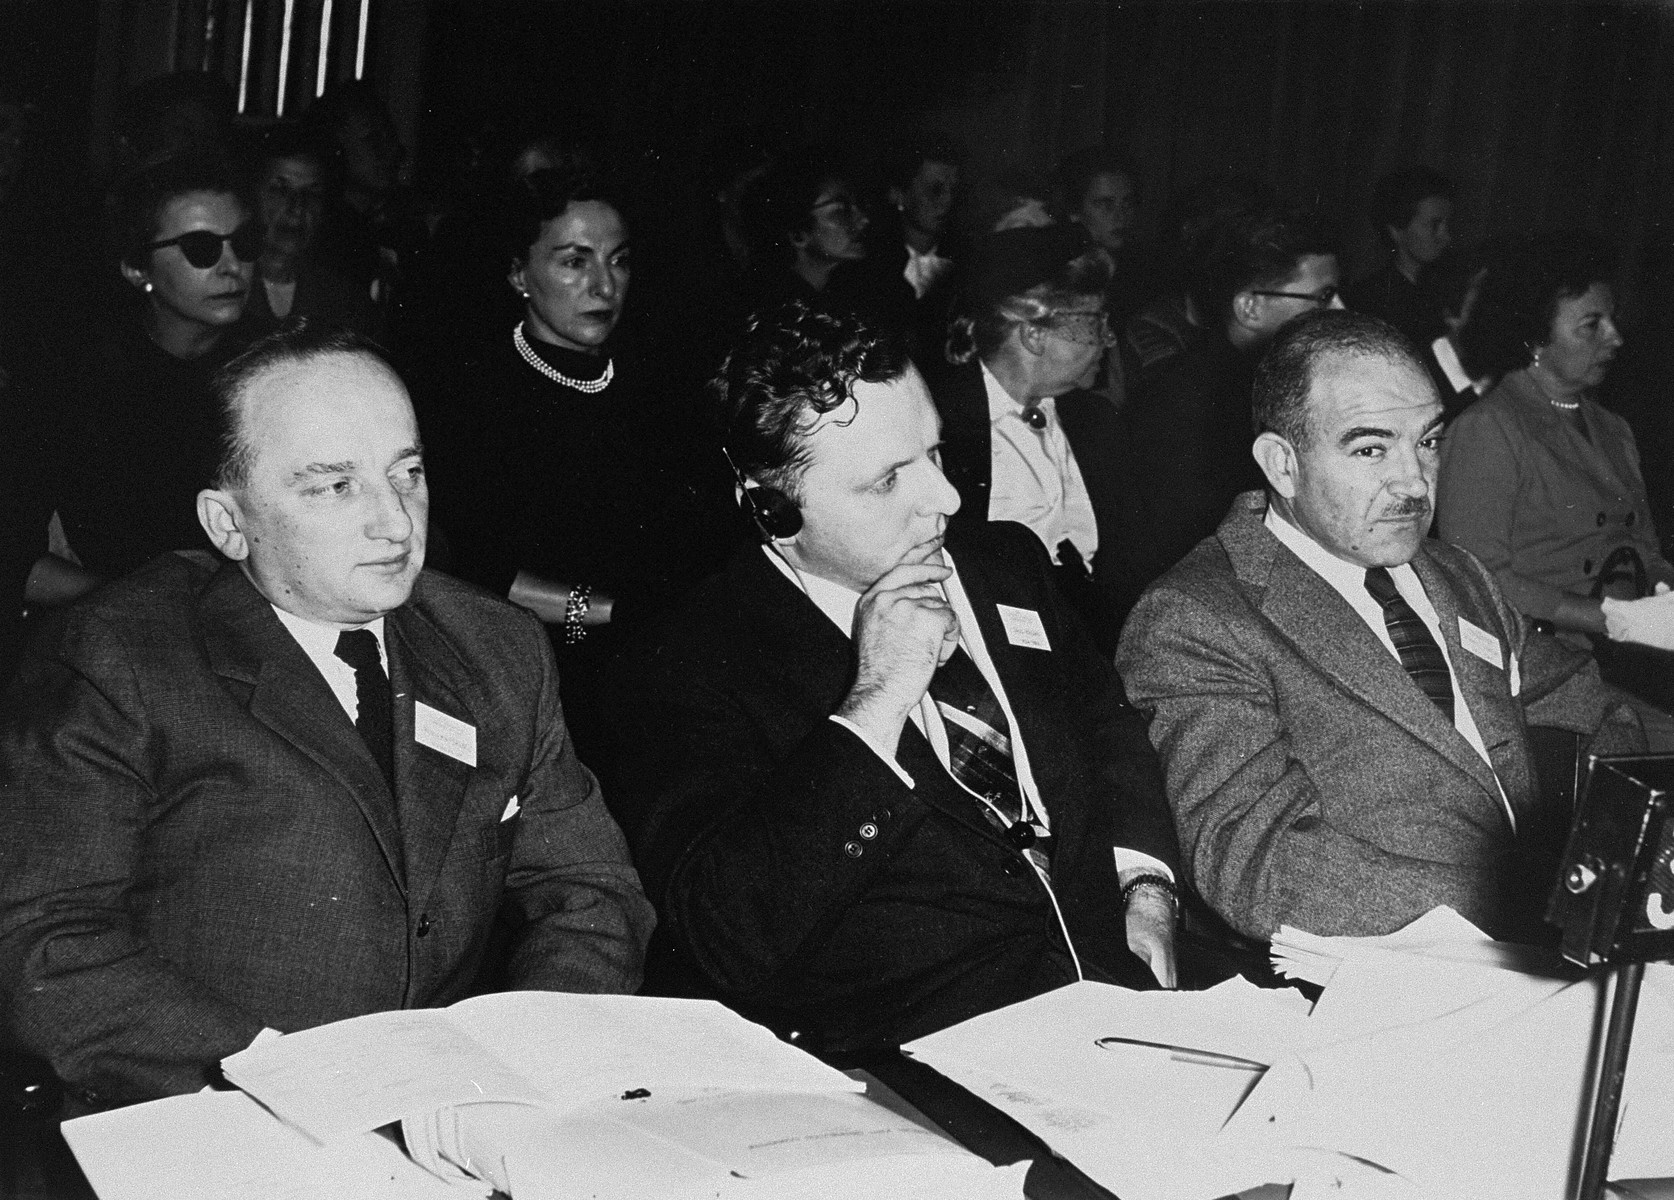 Three Jewish leaders participate in the tenth annual Country Directors Conference of the American Jewish Joint Distribution Committee at UNESCO House.    Pictured from left to right are: Benjamin Ferencz, Director-general of the Jewish Restitution Successor Organization; Saul Kagan, Secretary of the Conference on Jewish Material Claims; and Dr. Judah J. Shapiro, Cultural Director of the Conference on Jewish Material Claims.